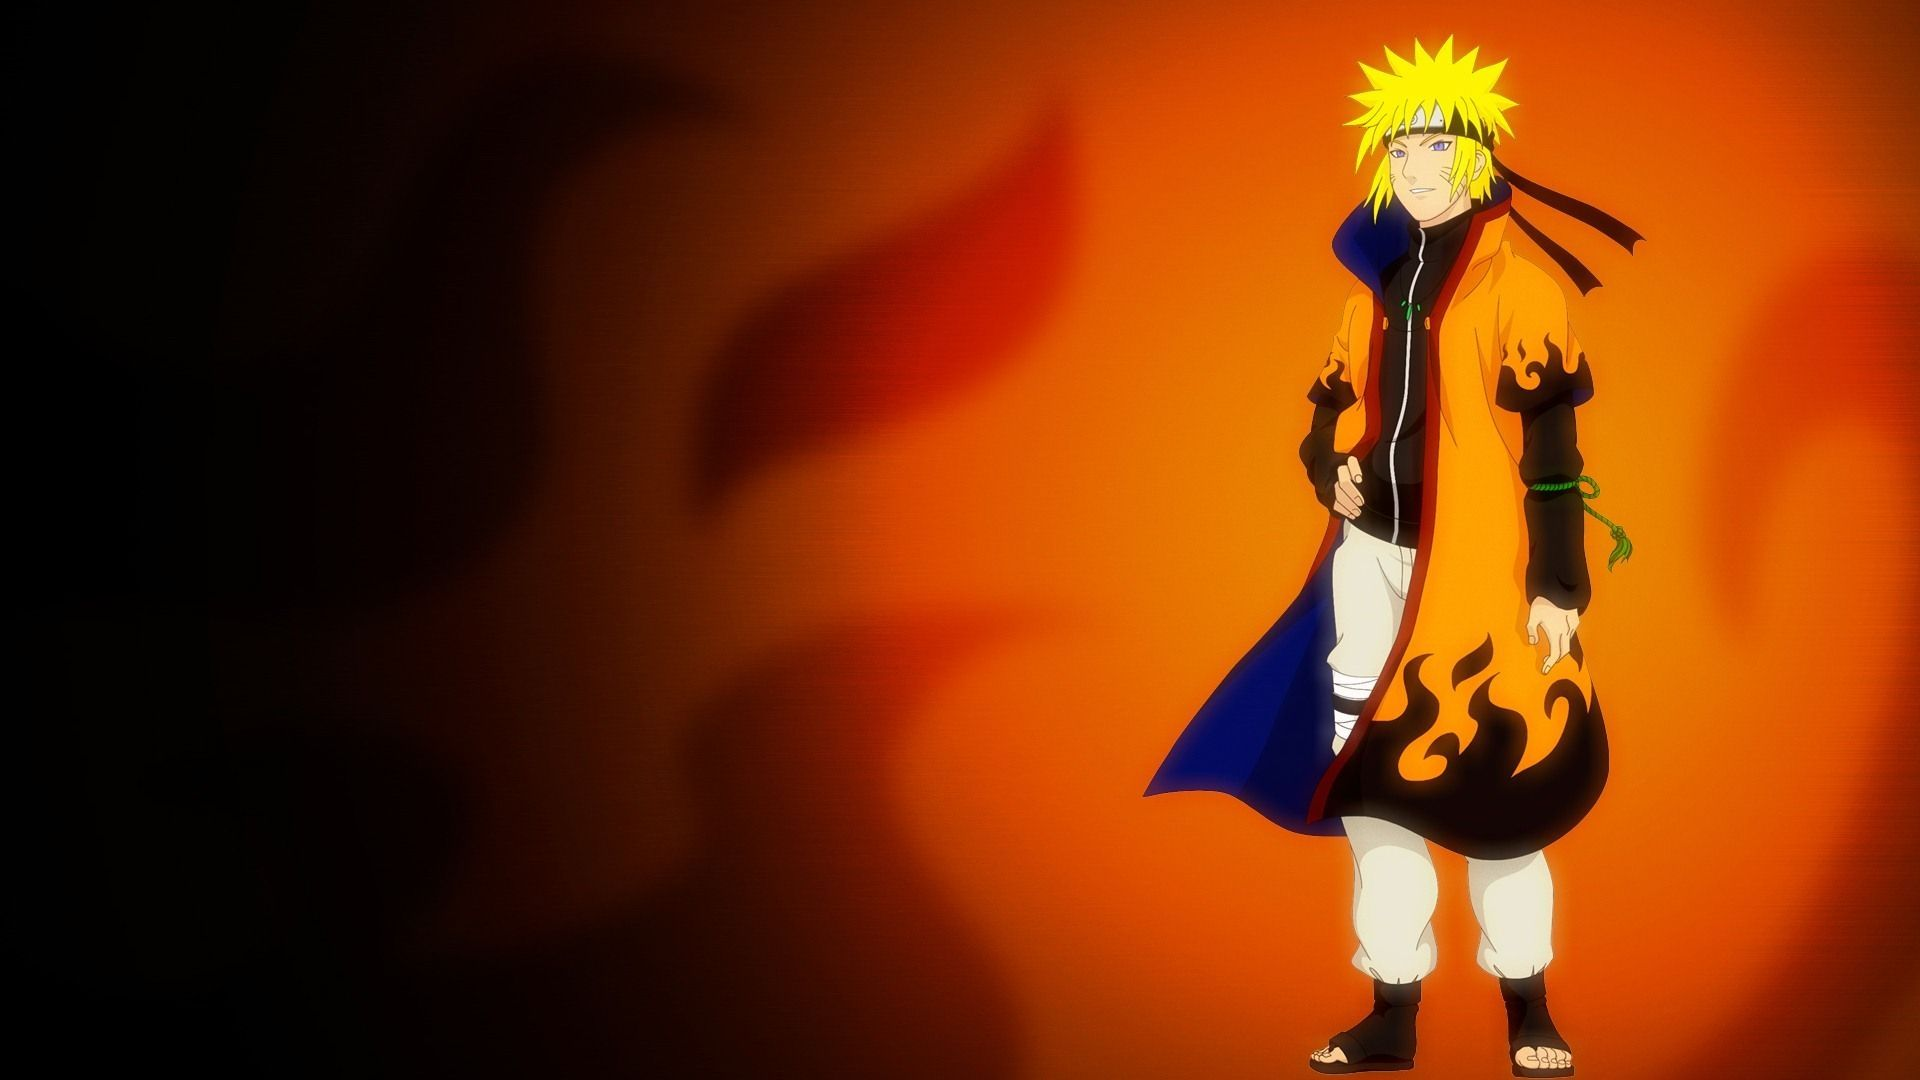 Naruto Desktop, Best Wallpaper